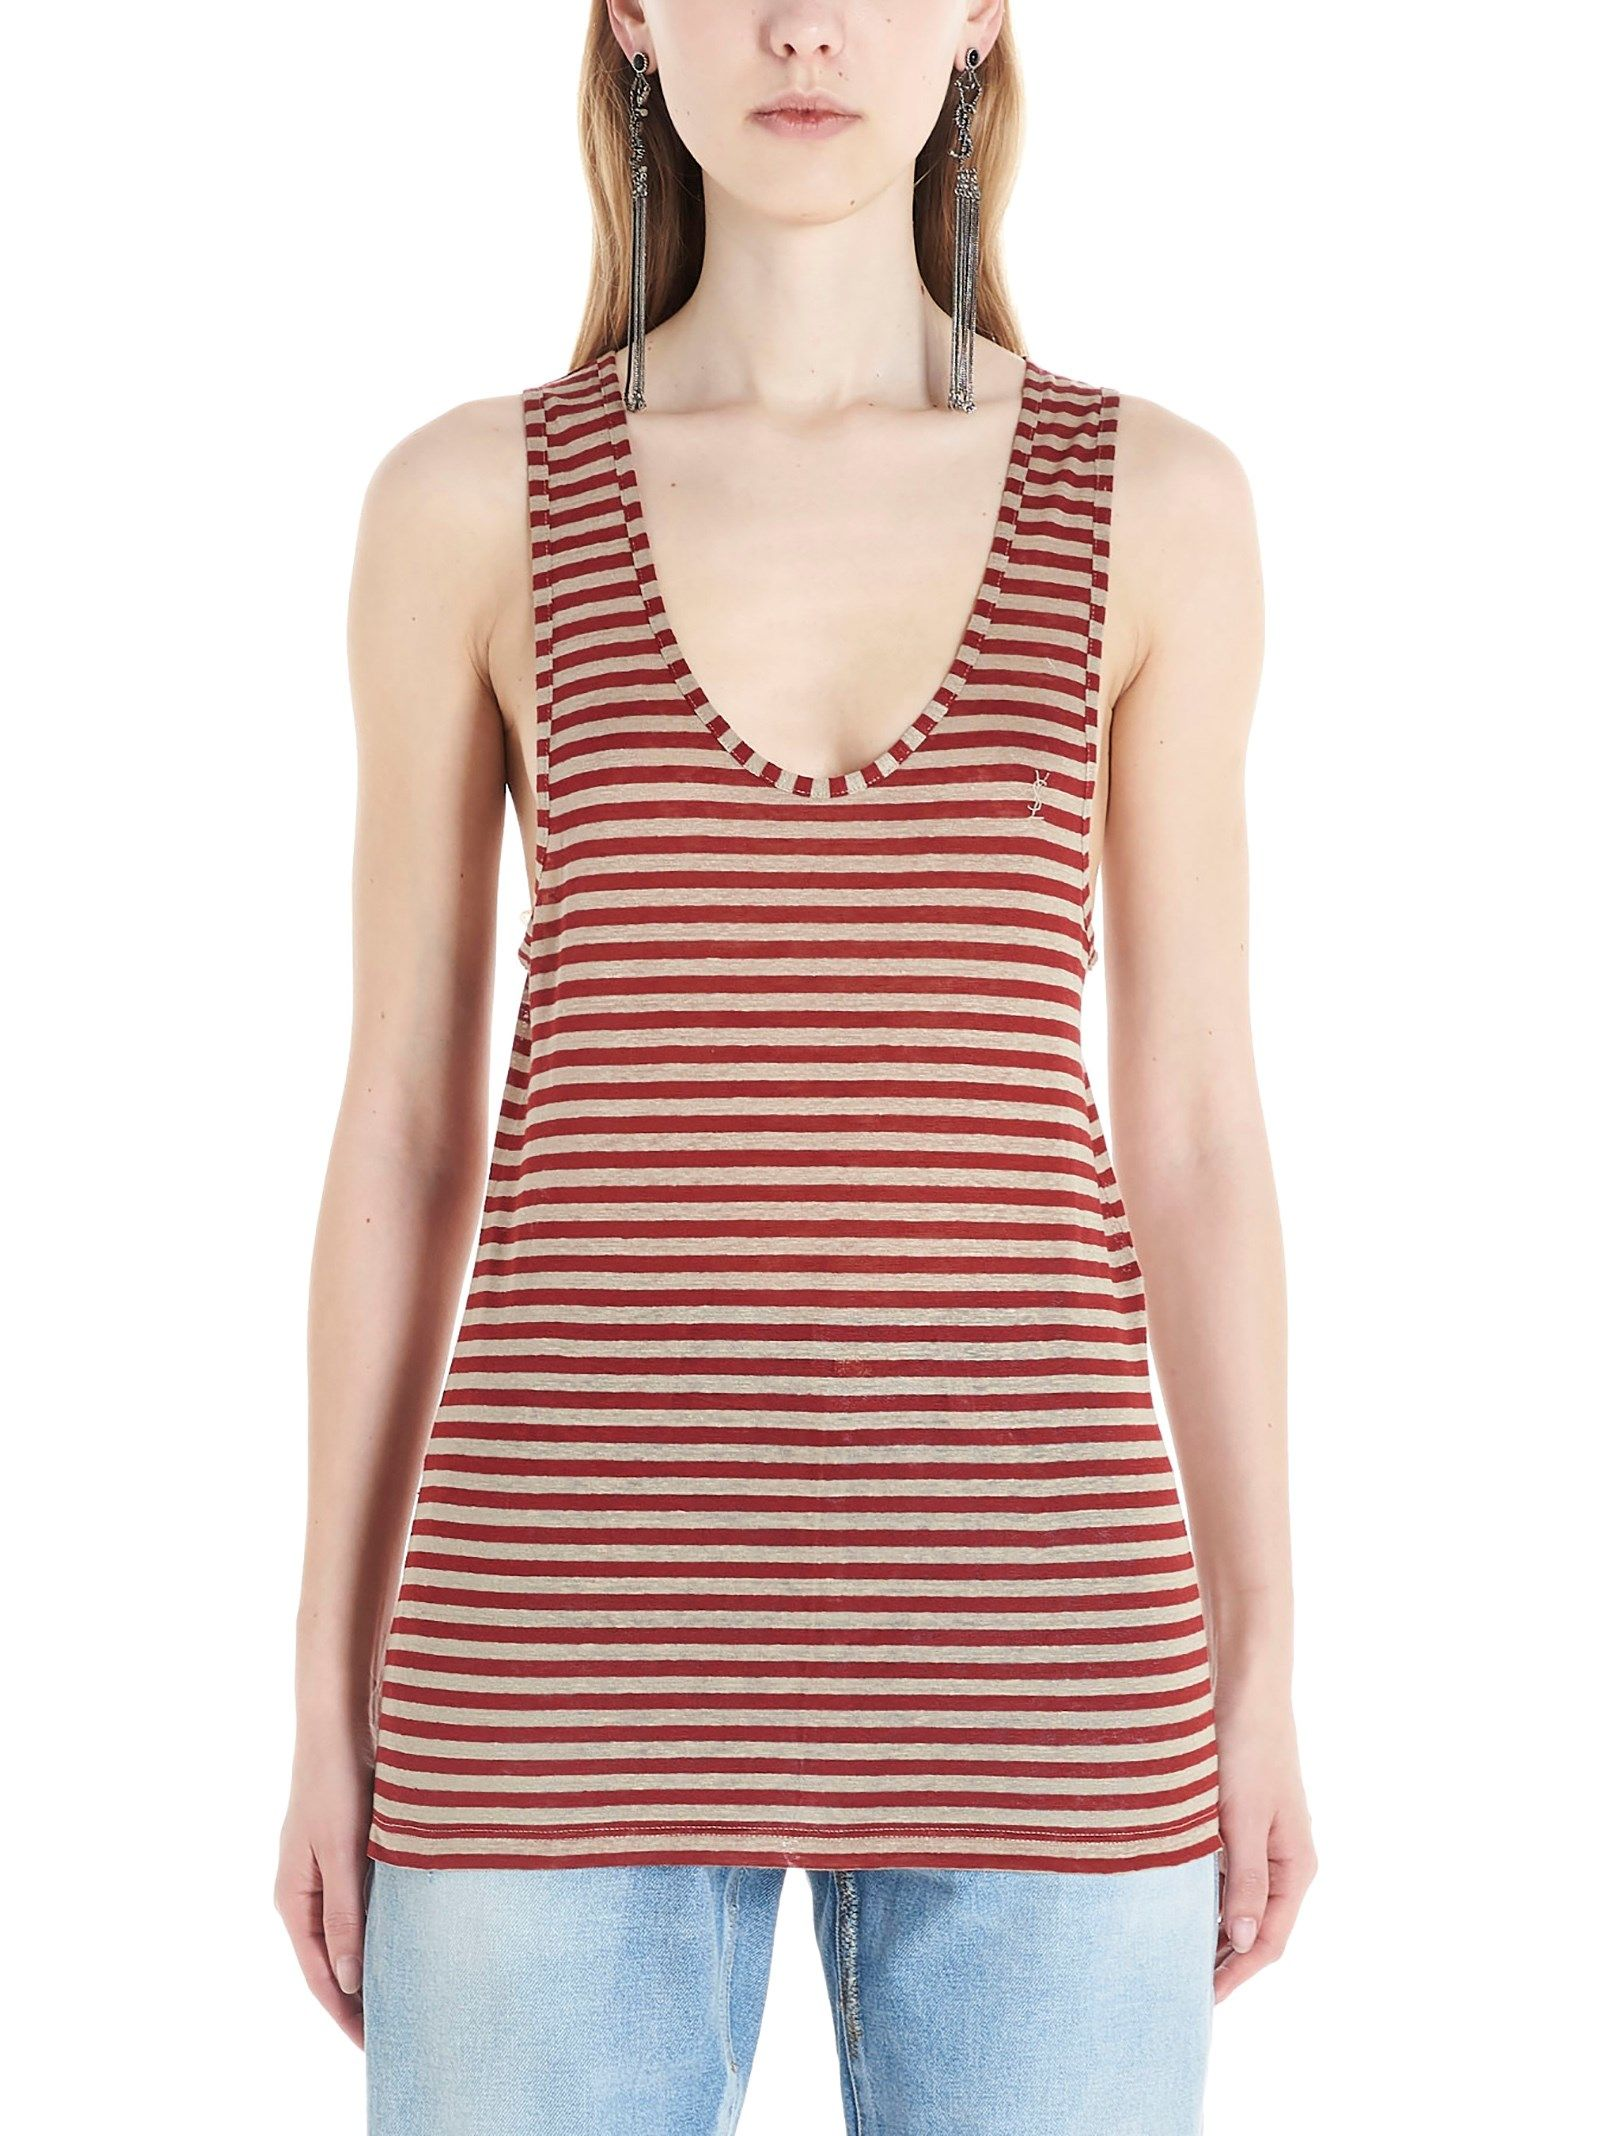 Saint Laurent Women's Multicolor Linen Tank Top